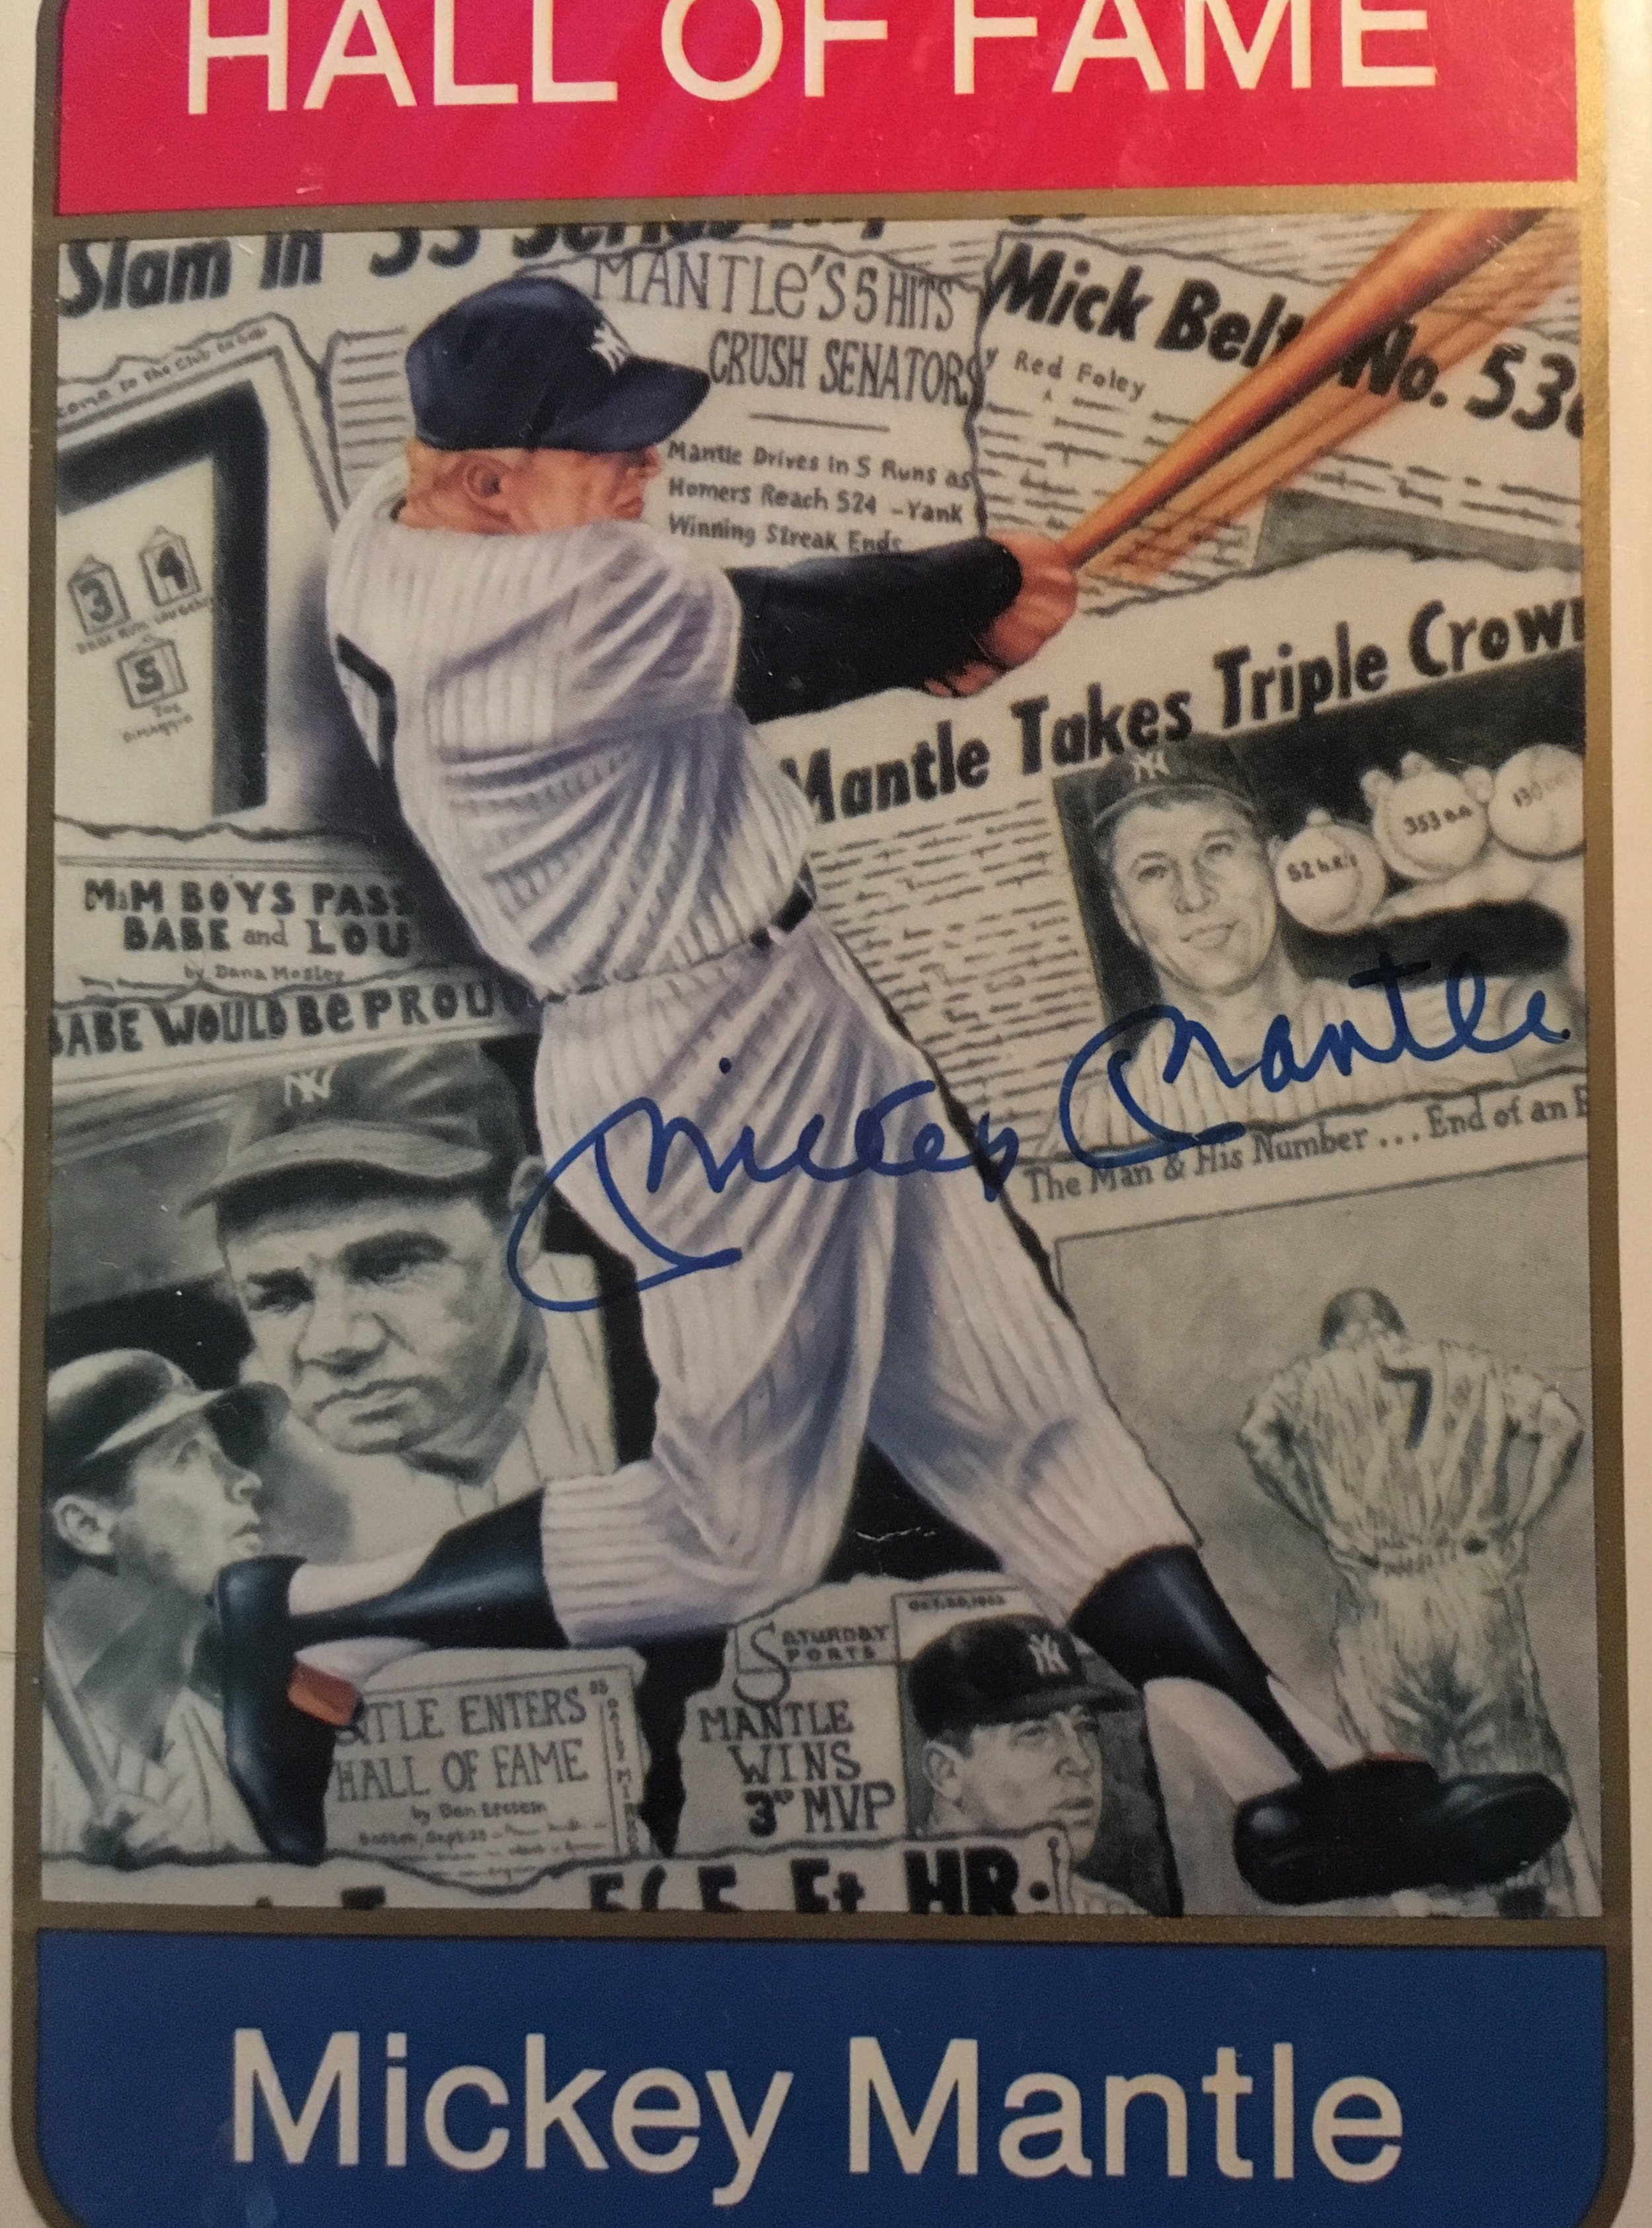 I got this autograph not long before Mickey Mantle died.